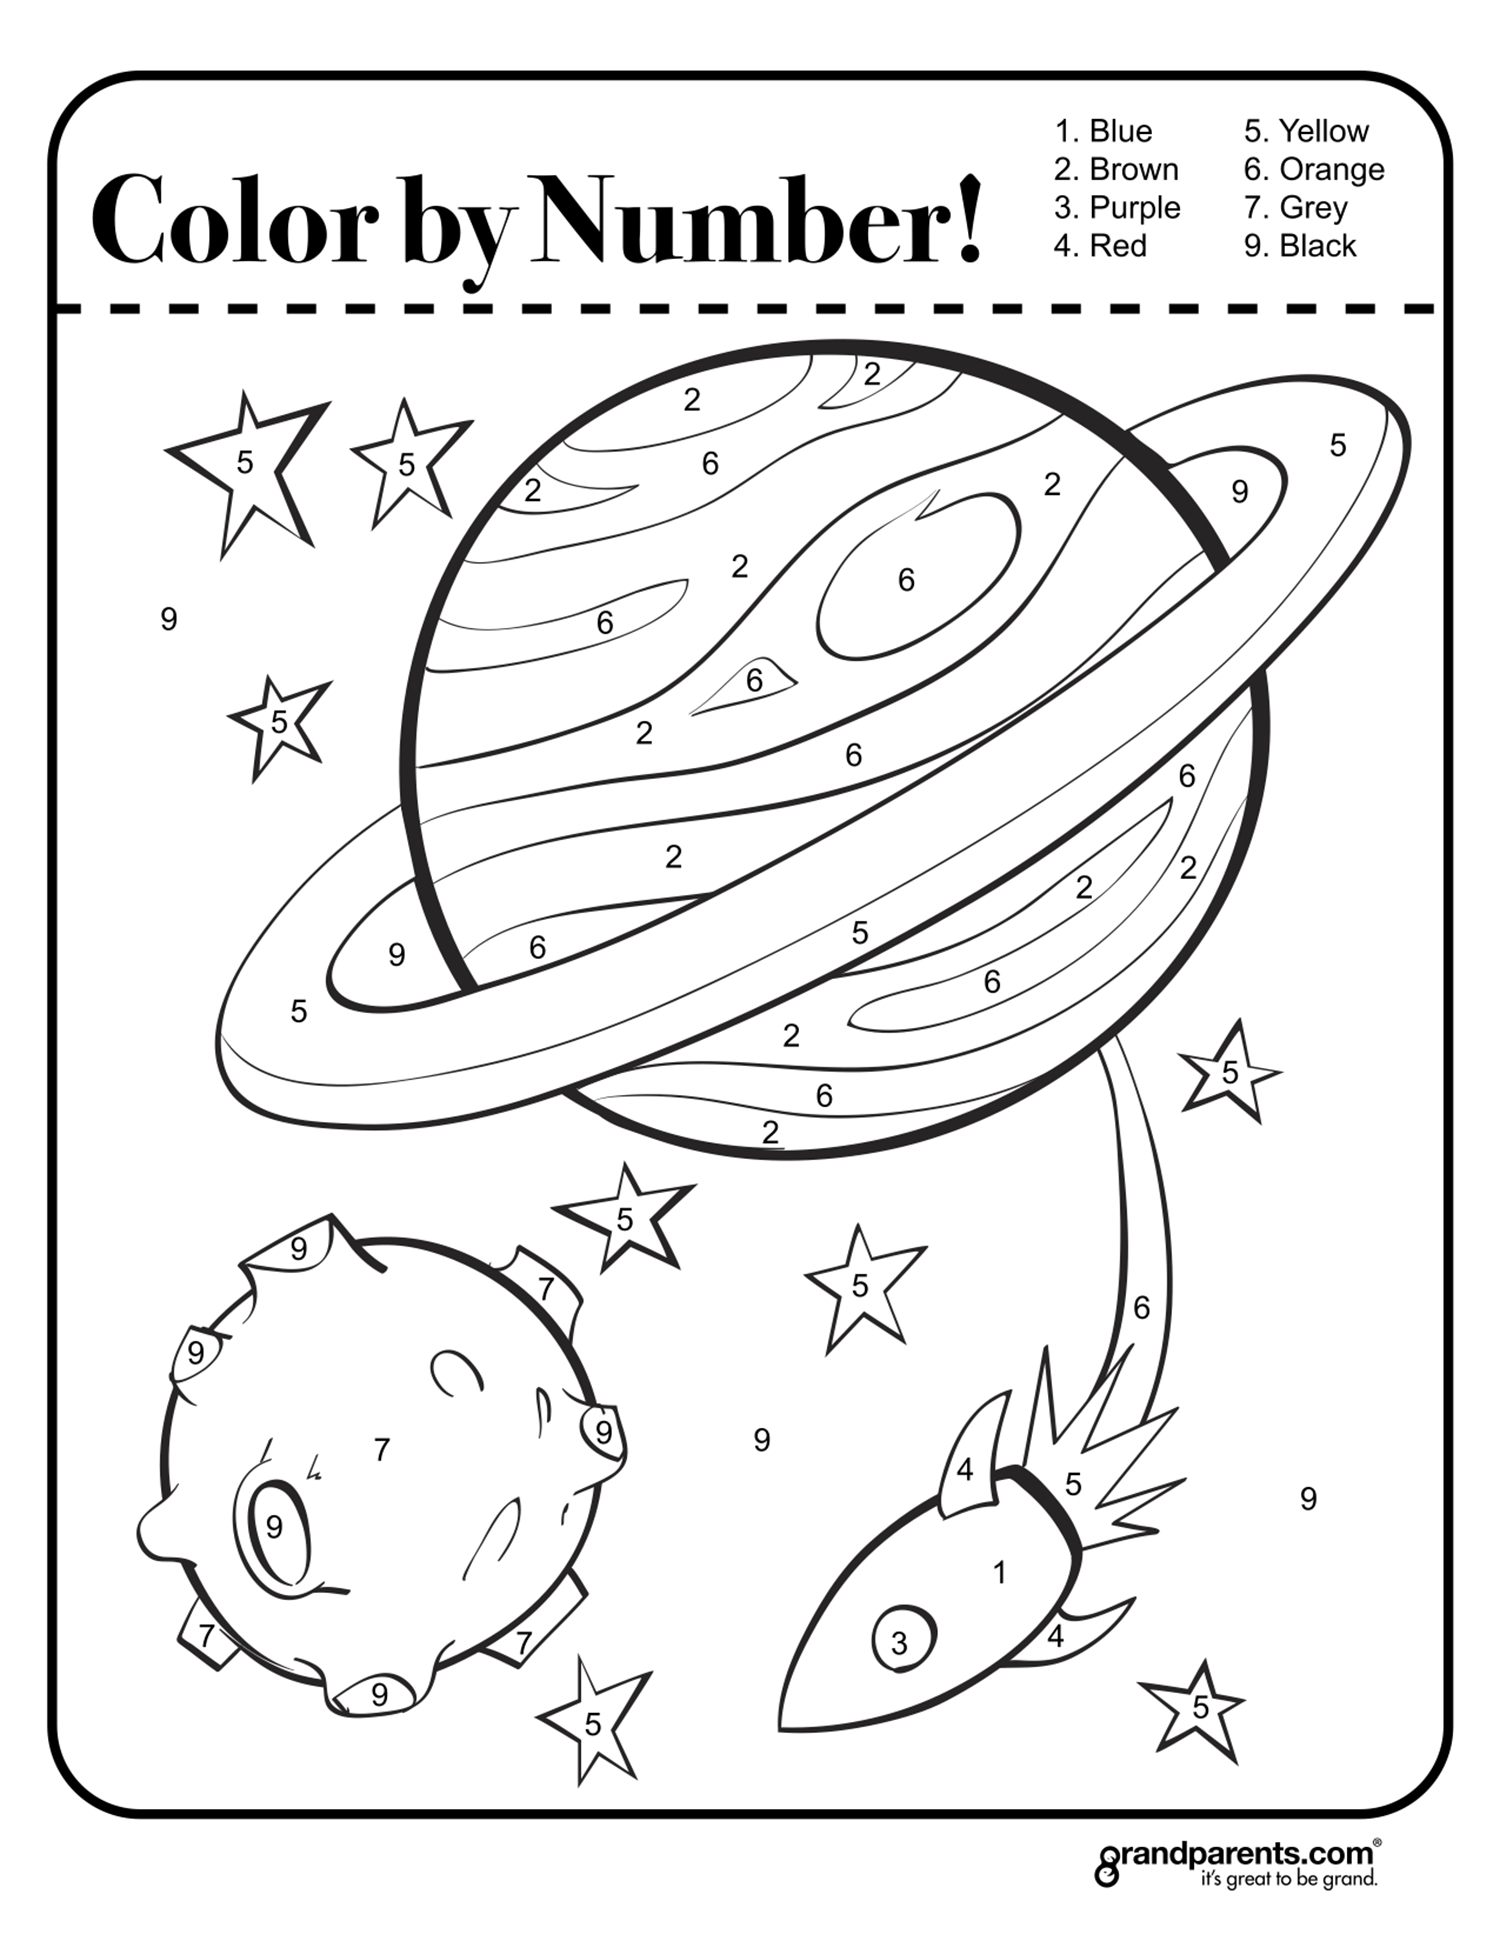 Color By Number Space Worksheet Space Coloring Pages Space Activities Outer Space Activities